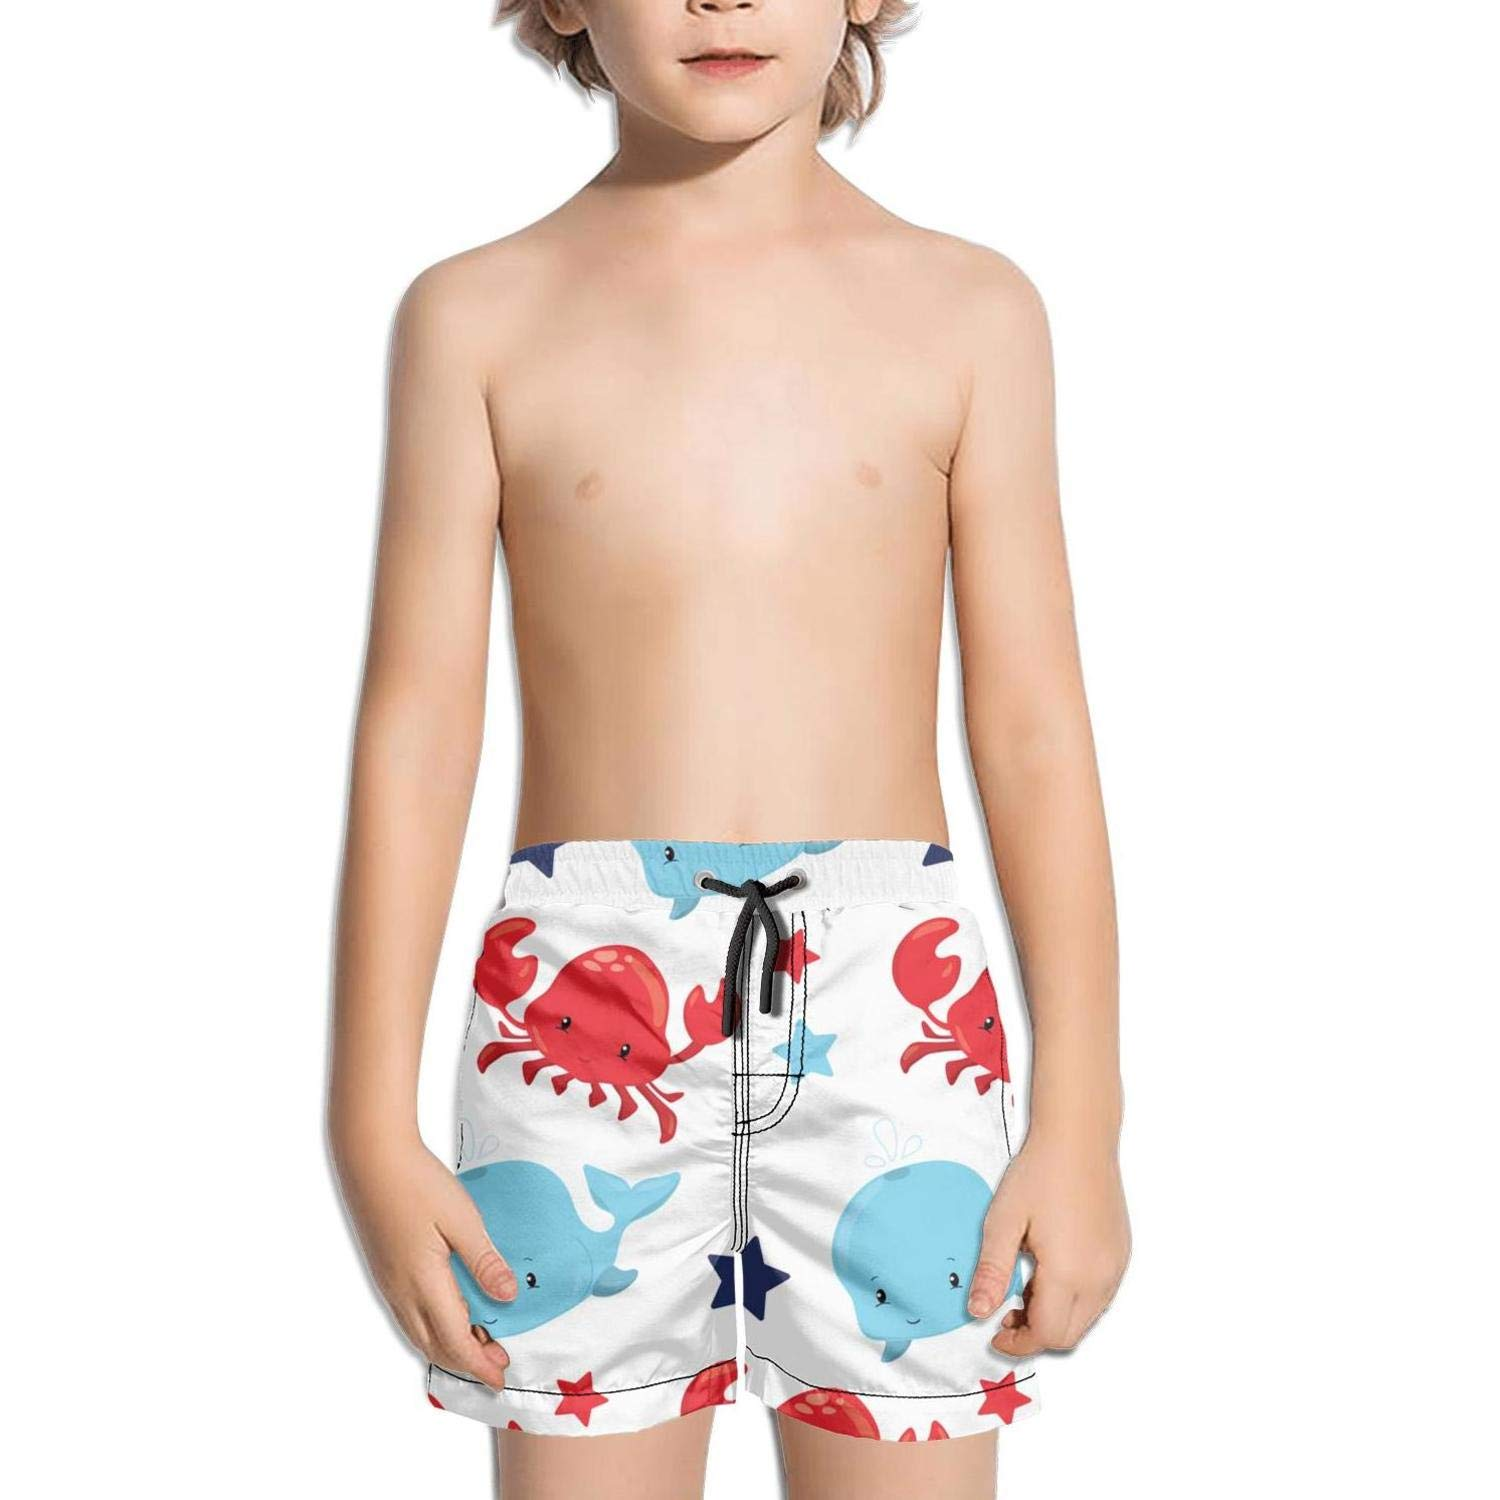 Lenard Hughes Boys Quick Dry Beach Shorts with Pockets Baby Whale red Crab Swim Trunks for Summer